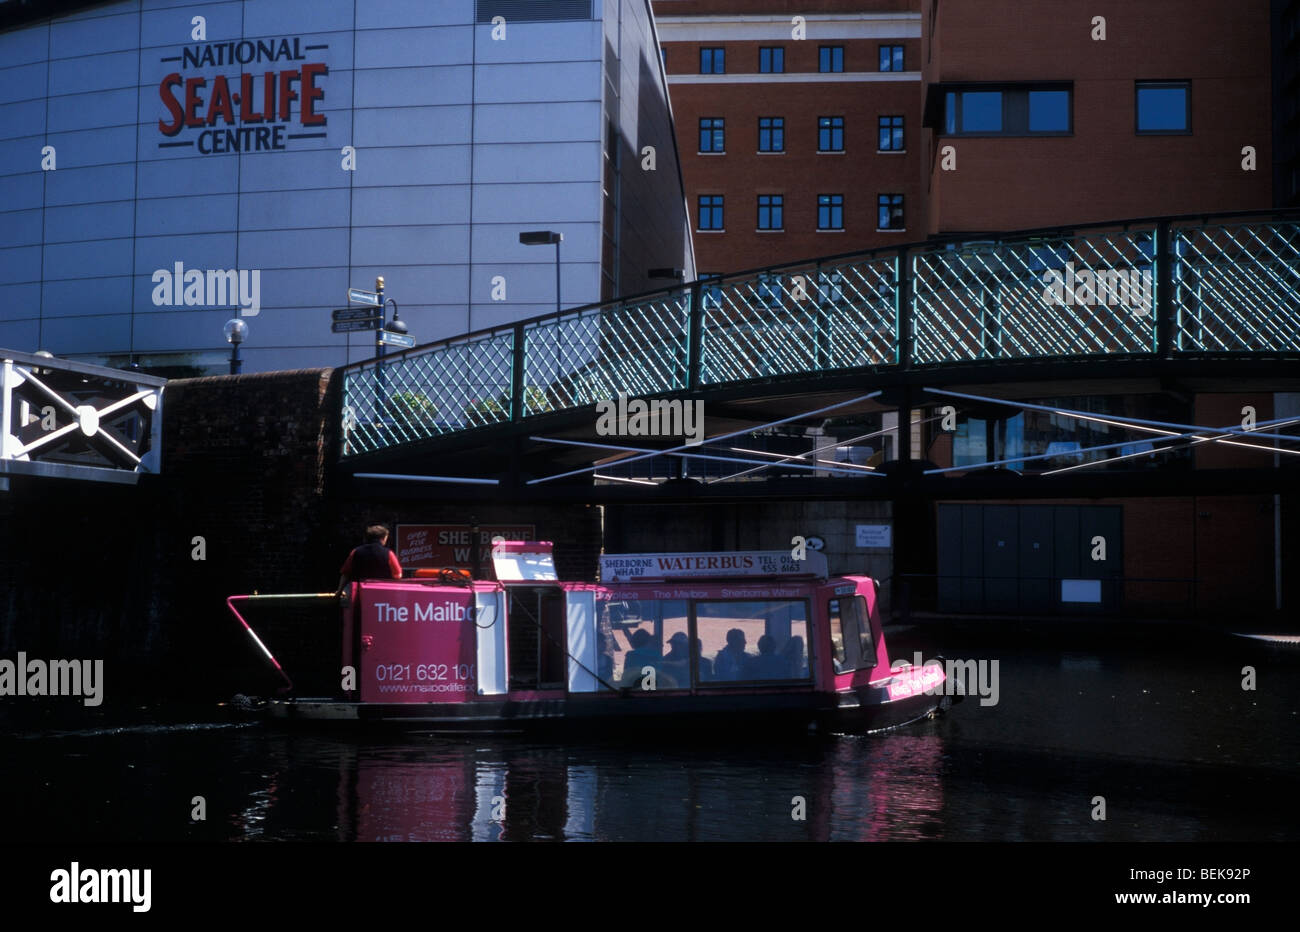 Waterbus in front of the National Sea Life Centre Birmingham UK - Stock Image